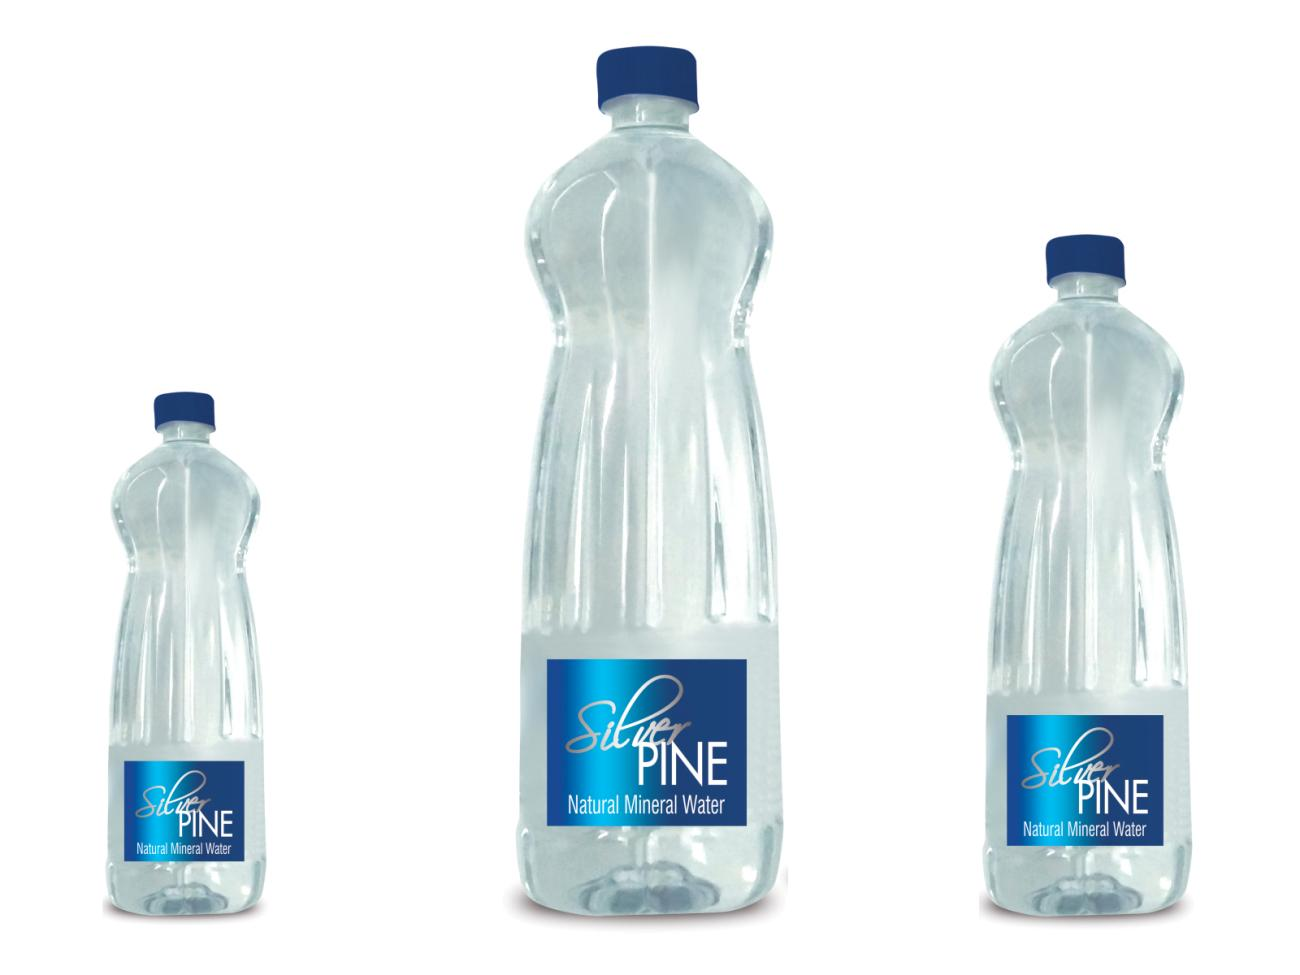 SILVER PINE NATURAL MINERAL WATER